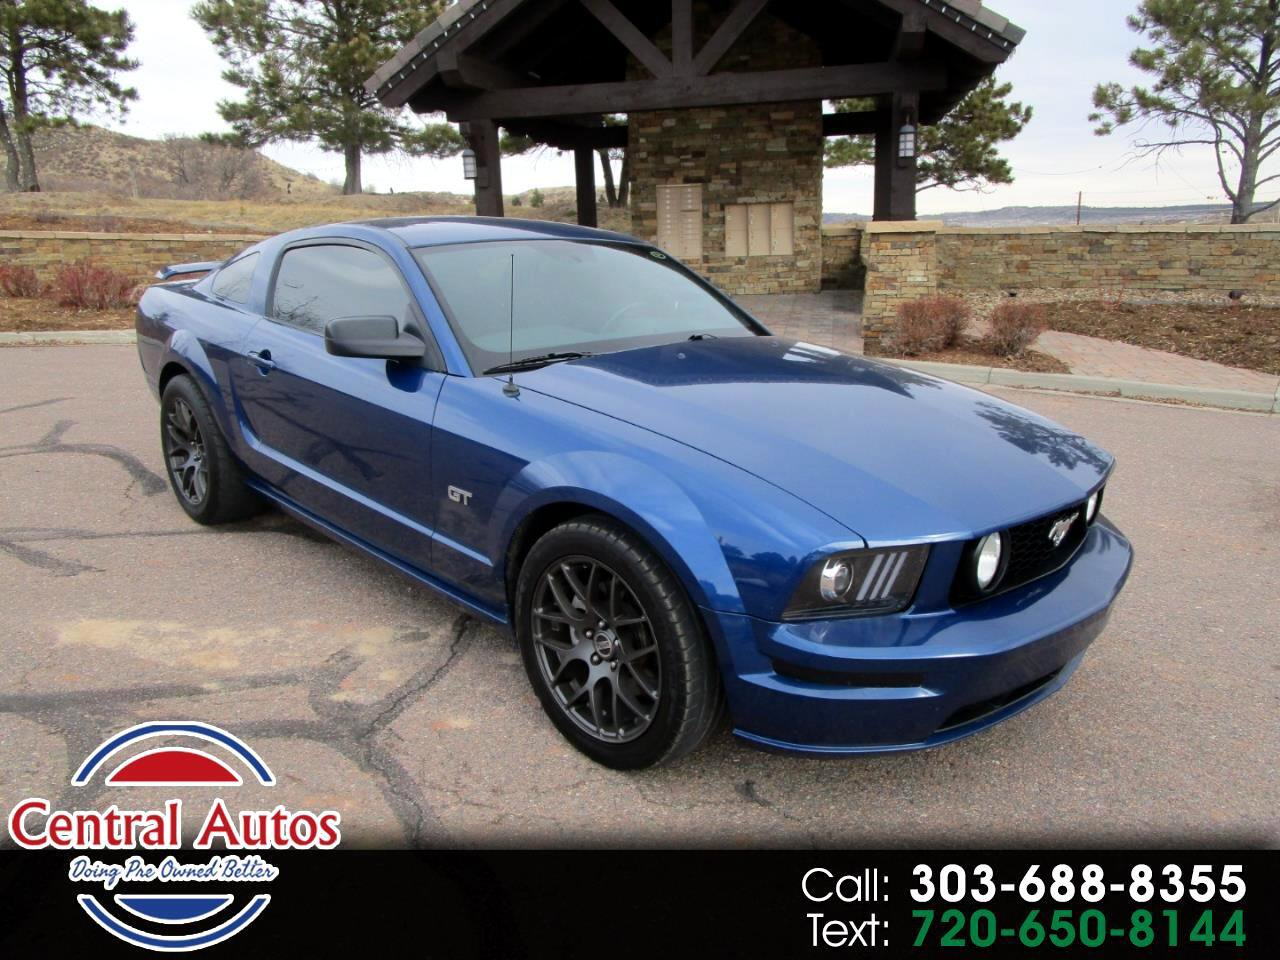 2008 Ford Mustang GT Deluxe image